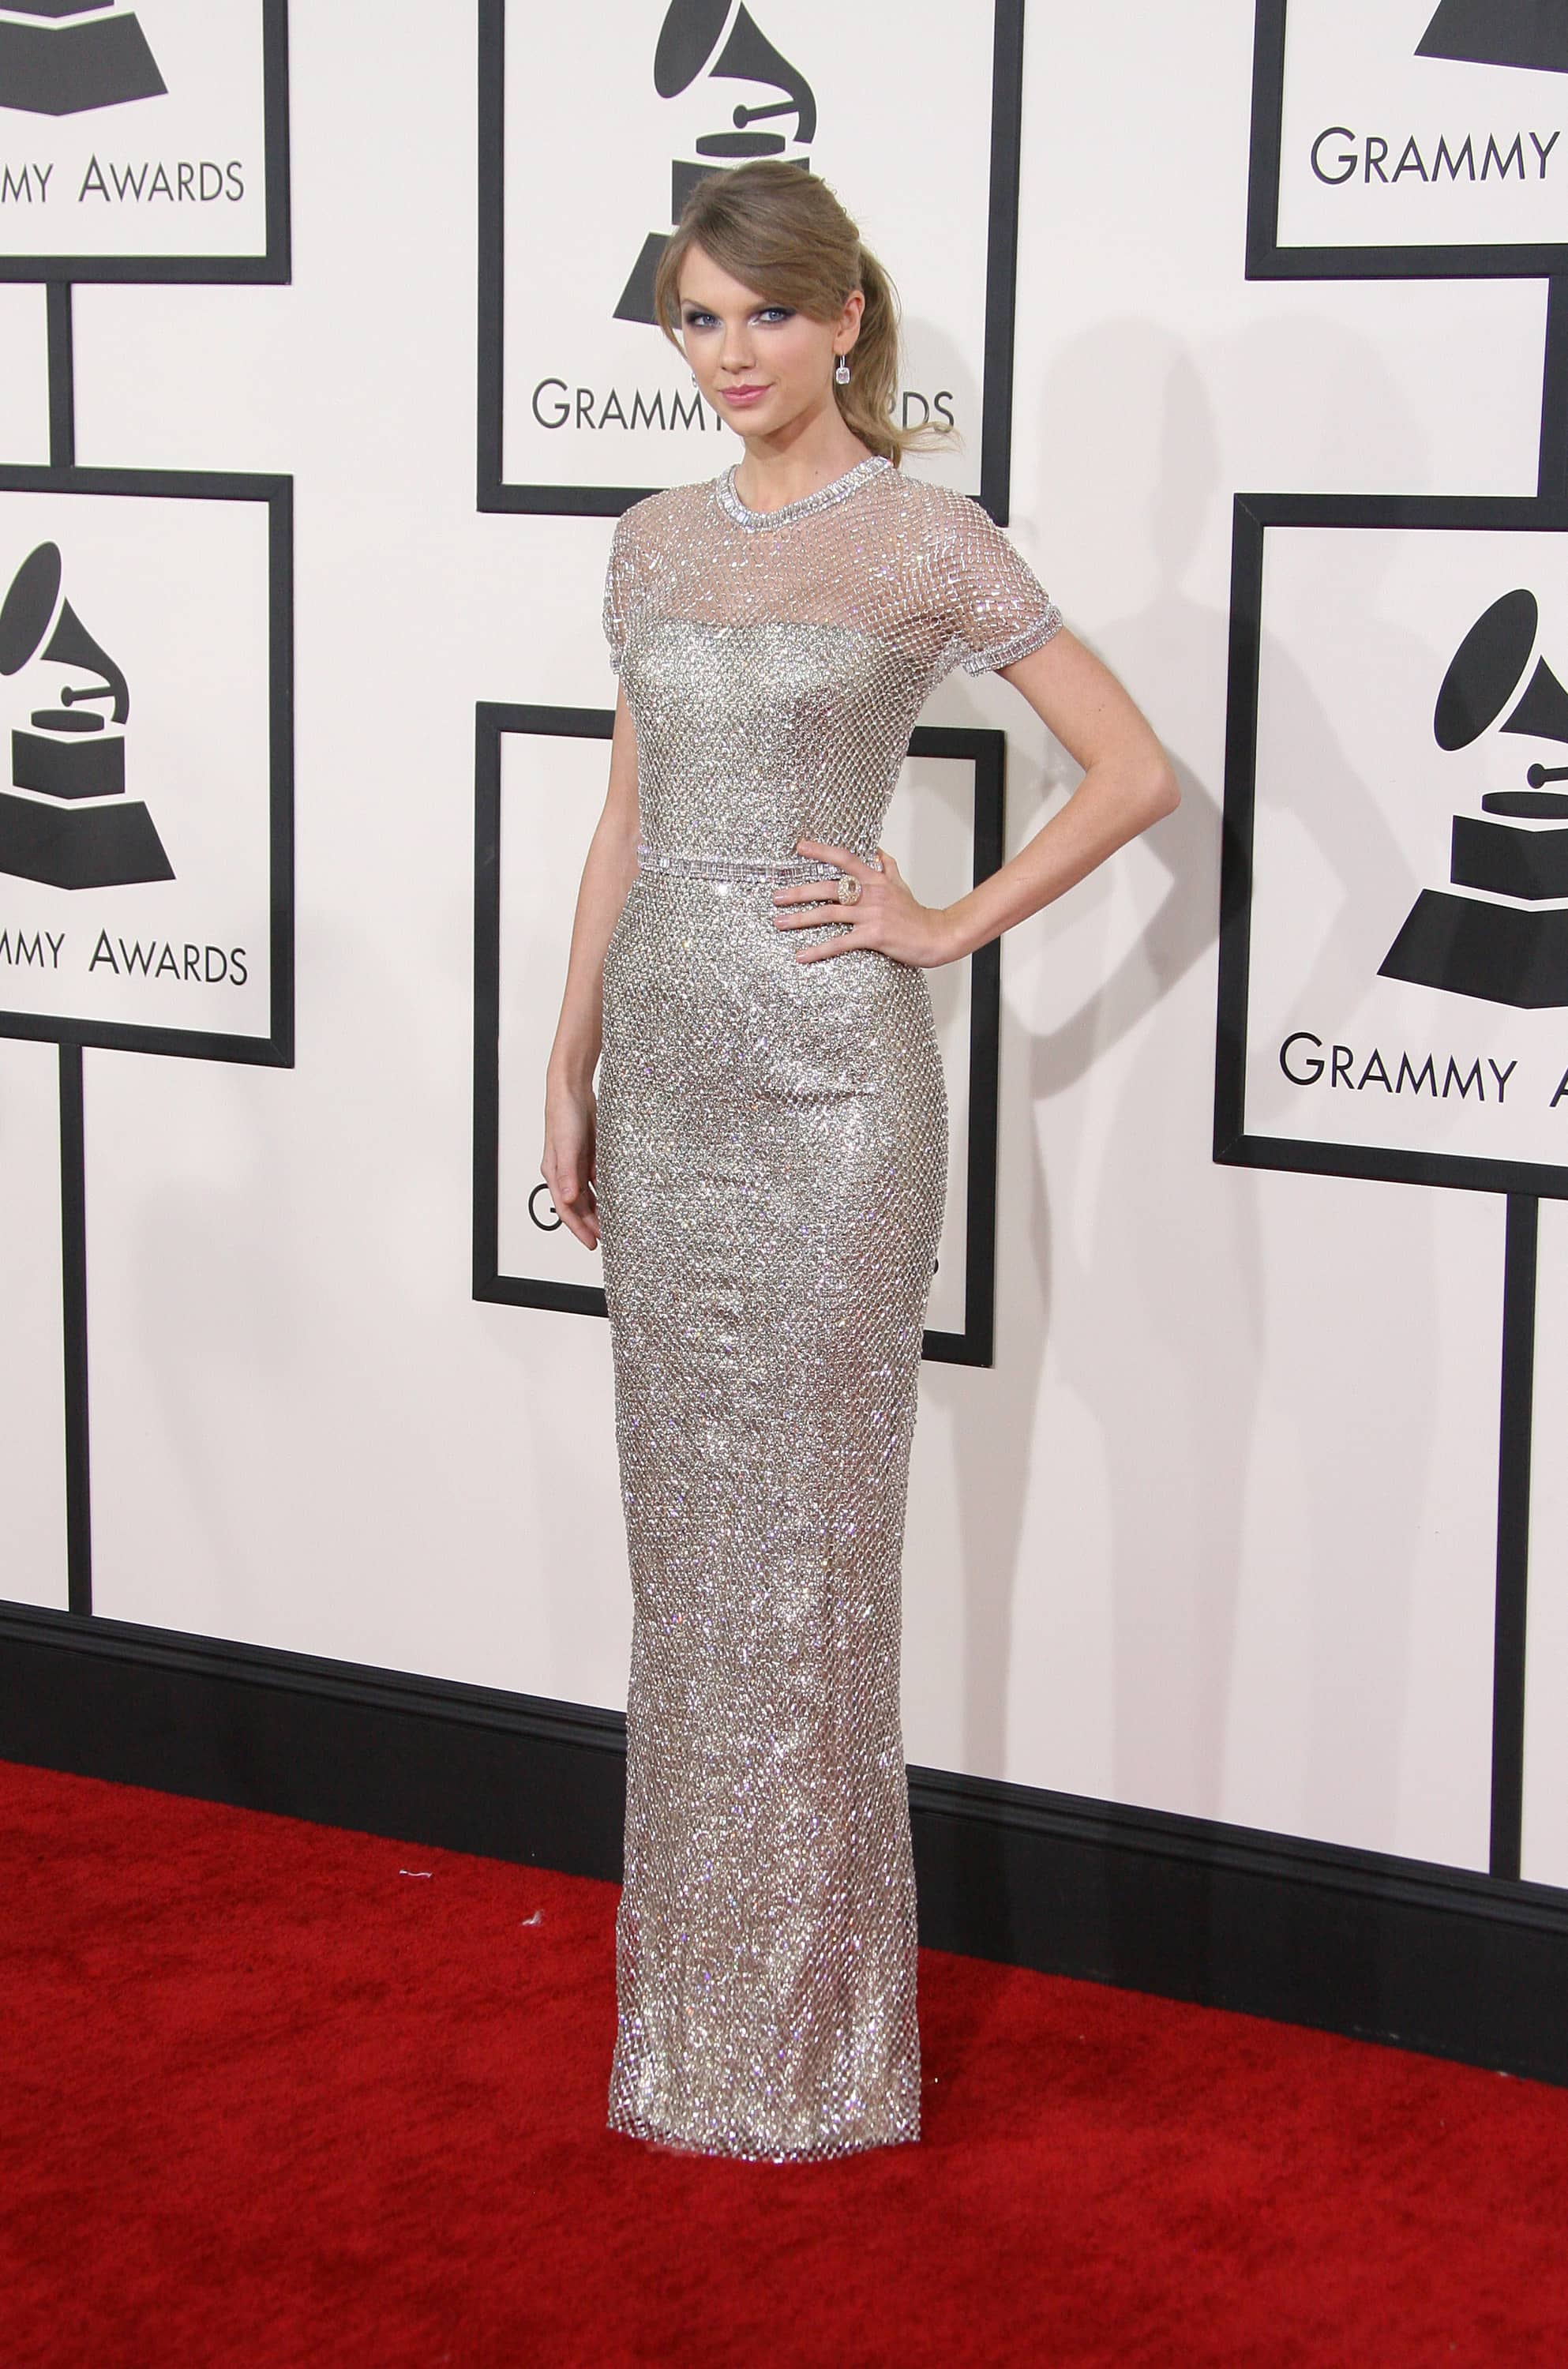 Taylor Swift at the 2014 Grammy Awards, Photo by Keystone Press